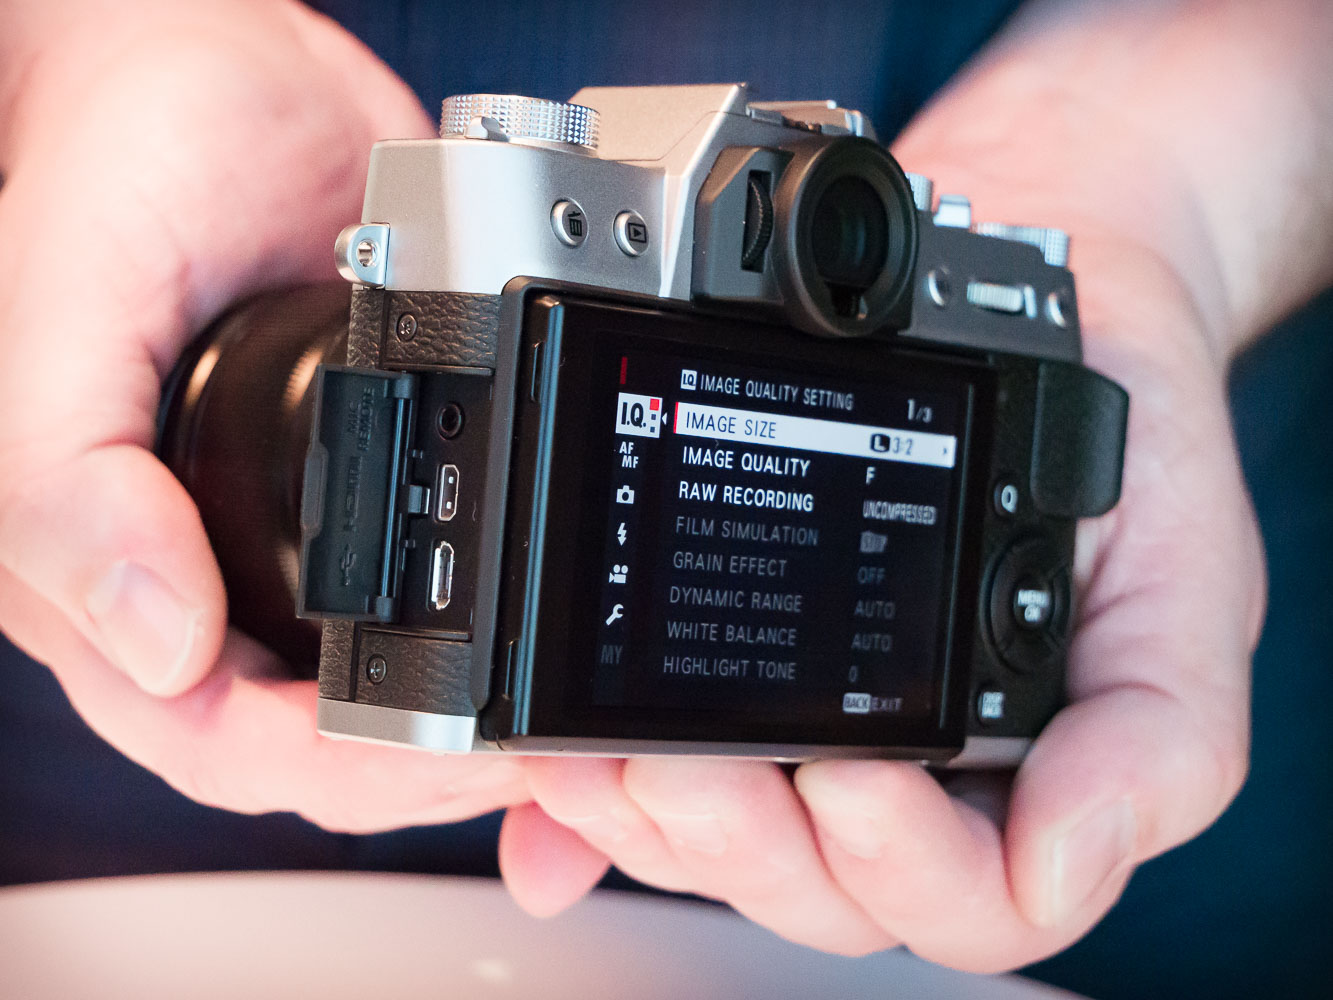 Feisty Upstart Hands On With The Fujifilm X T20 Digital Photography Review